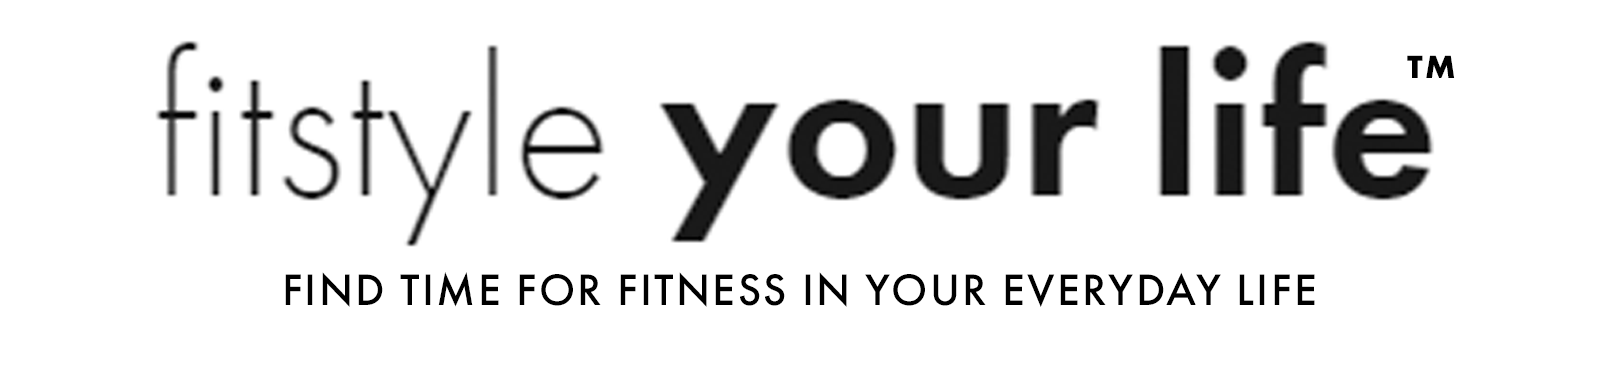 ftyourlife TM image.png